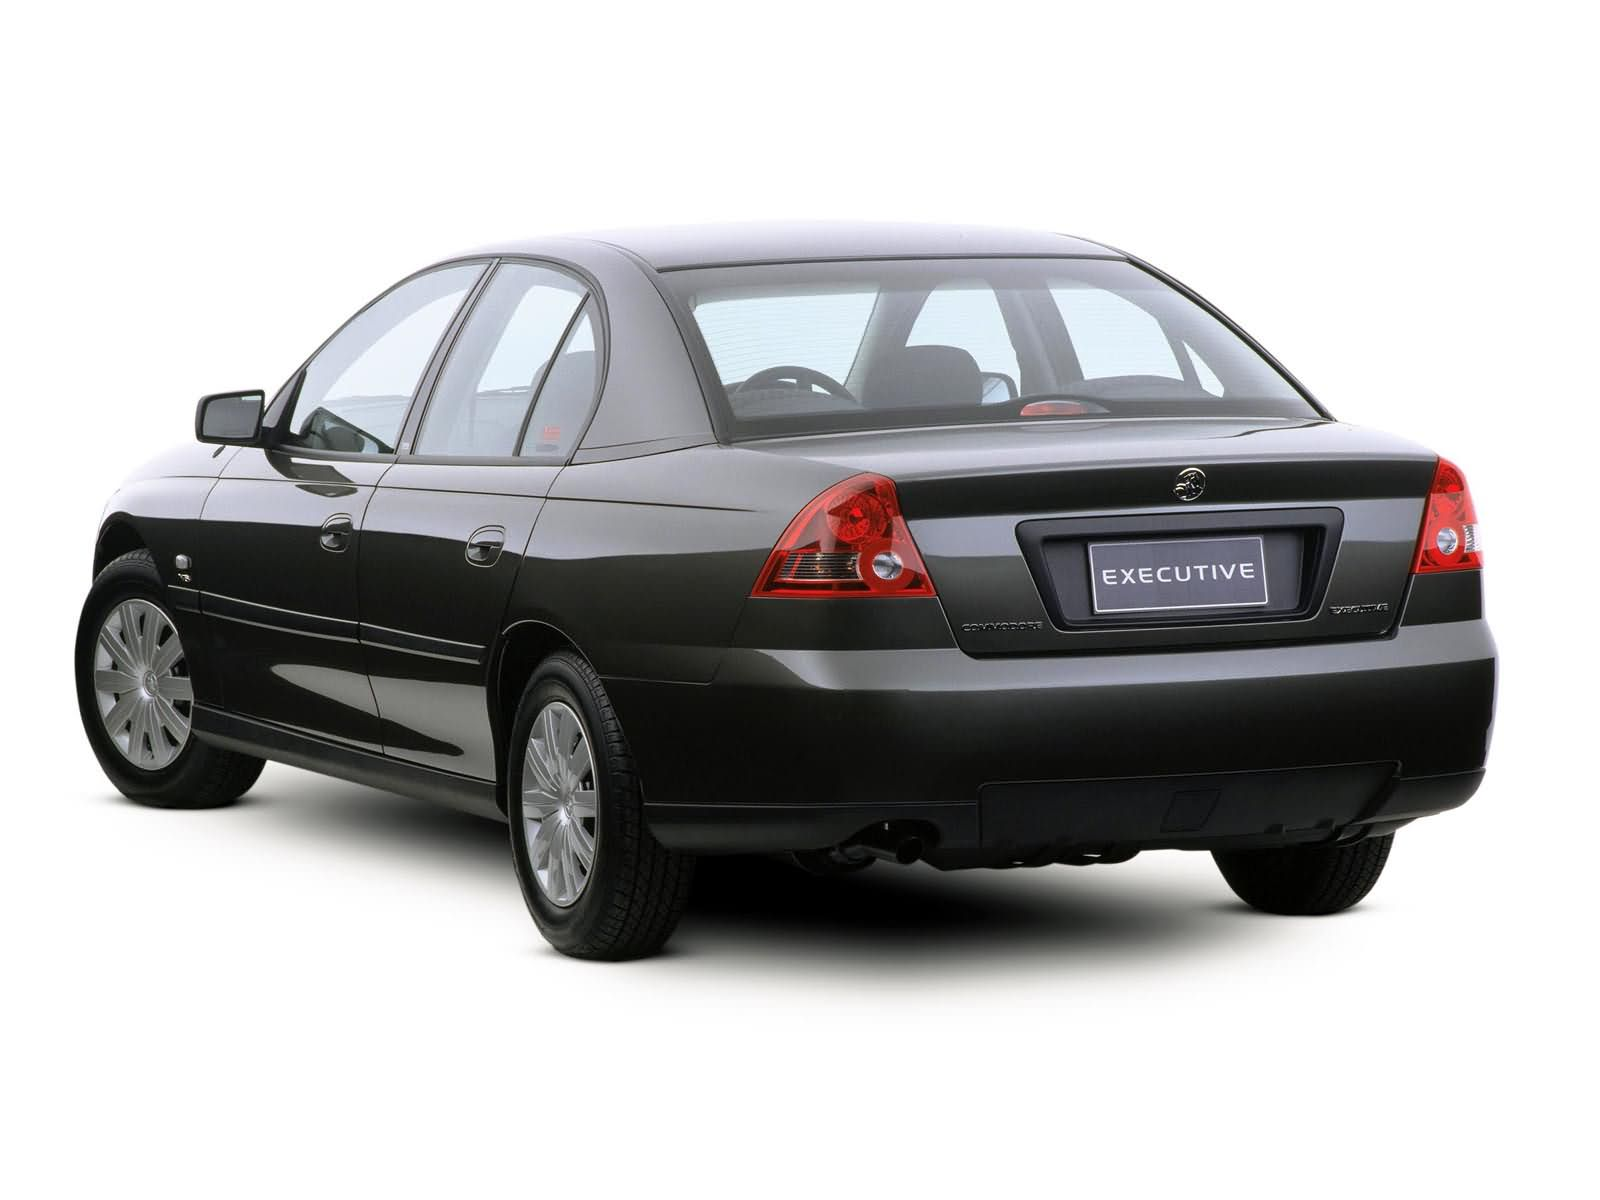 Holden Commodore Executive photo 3072